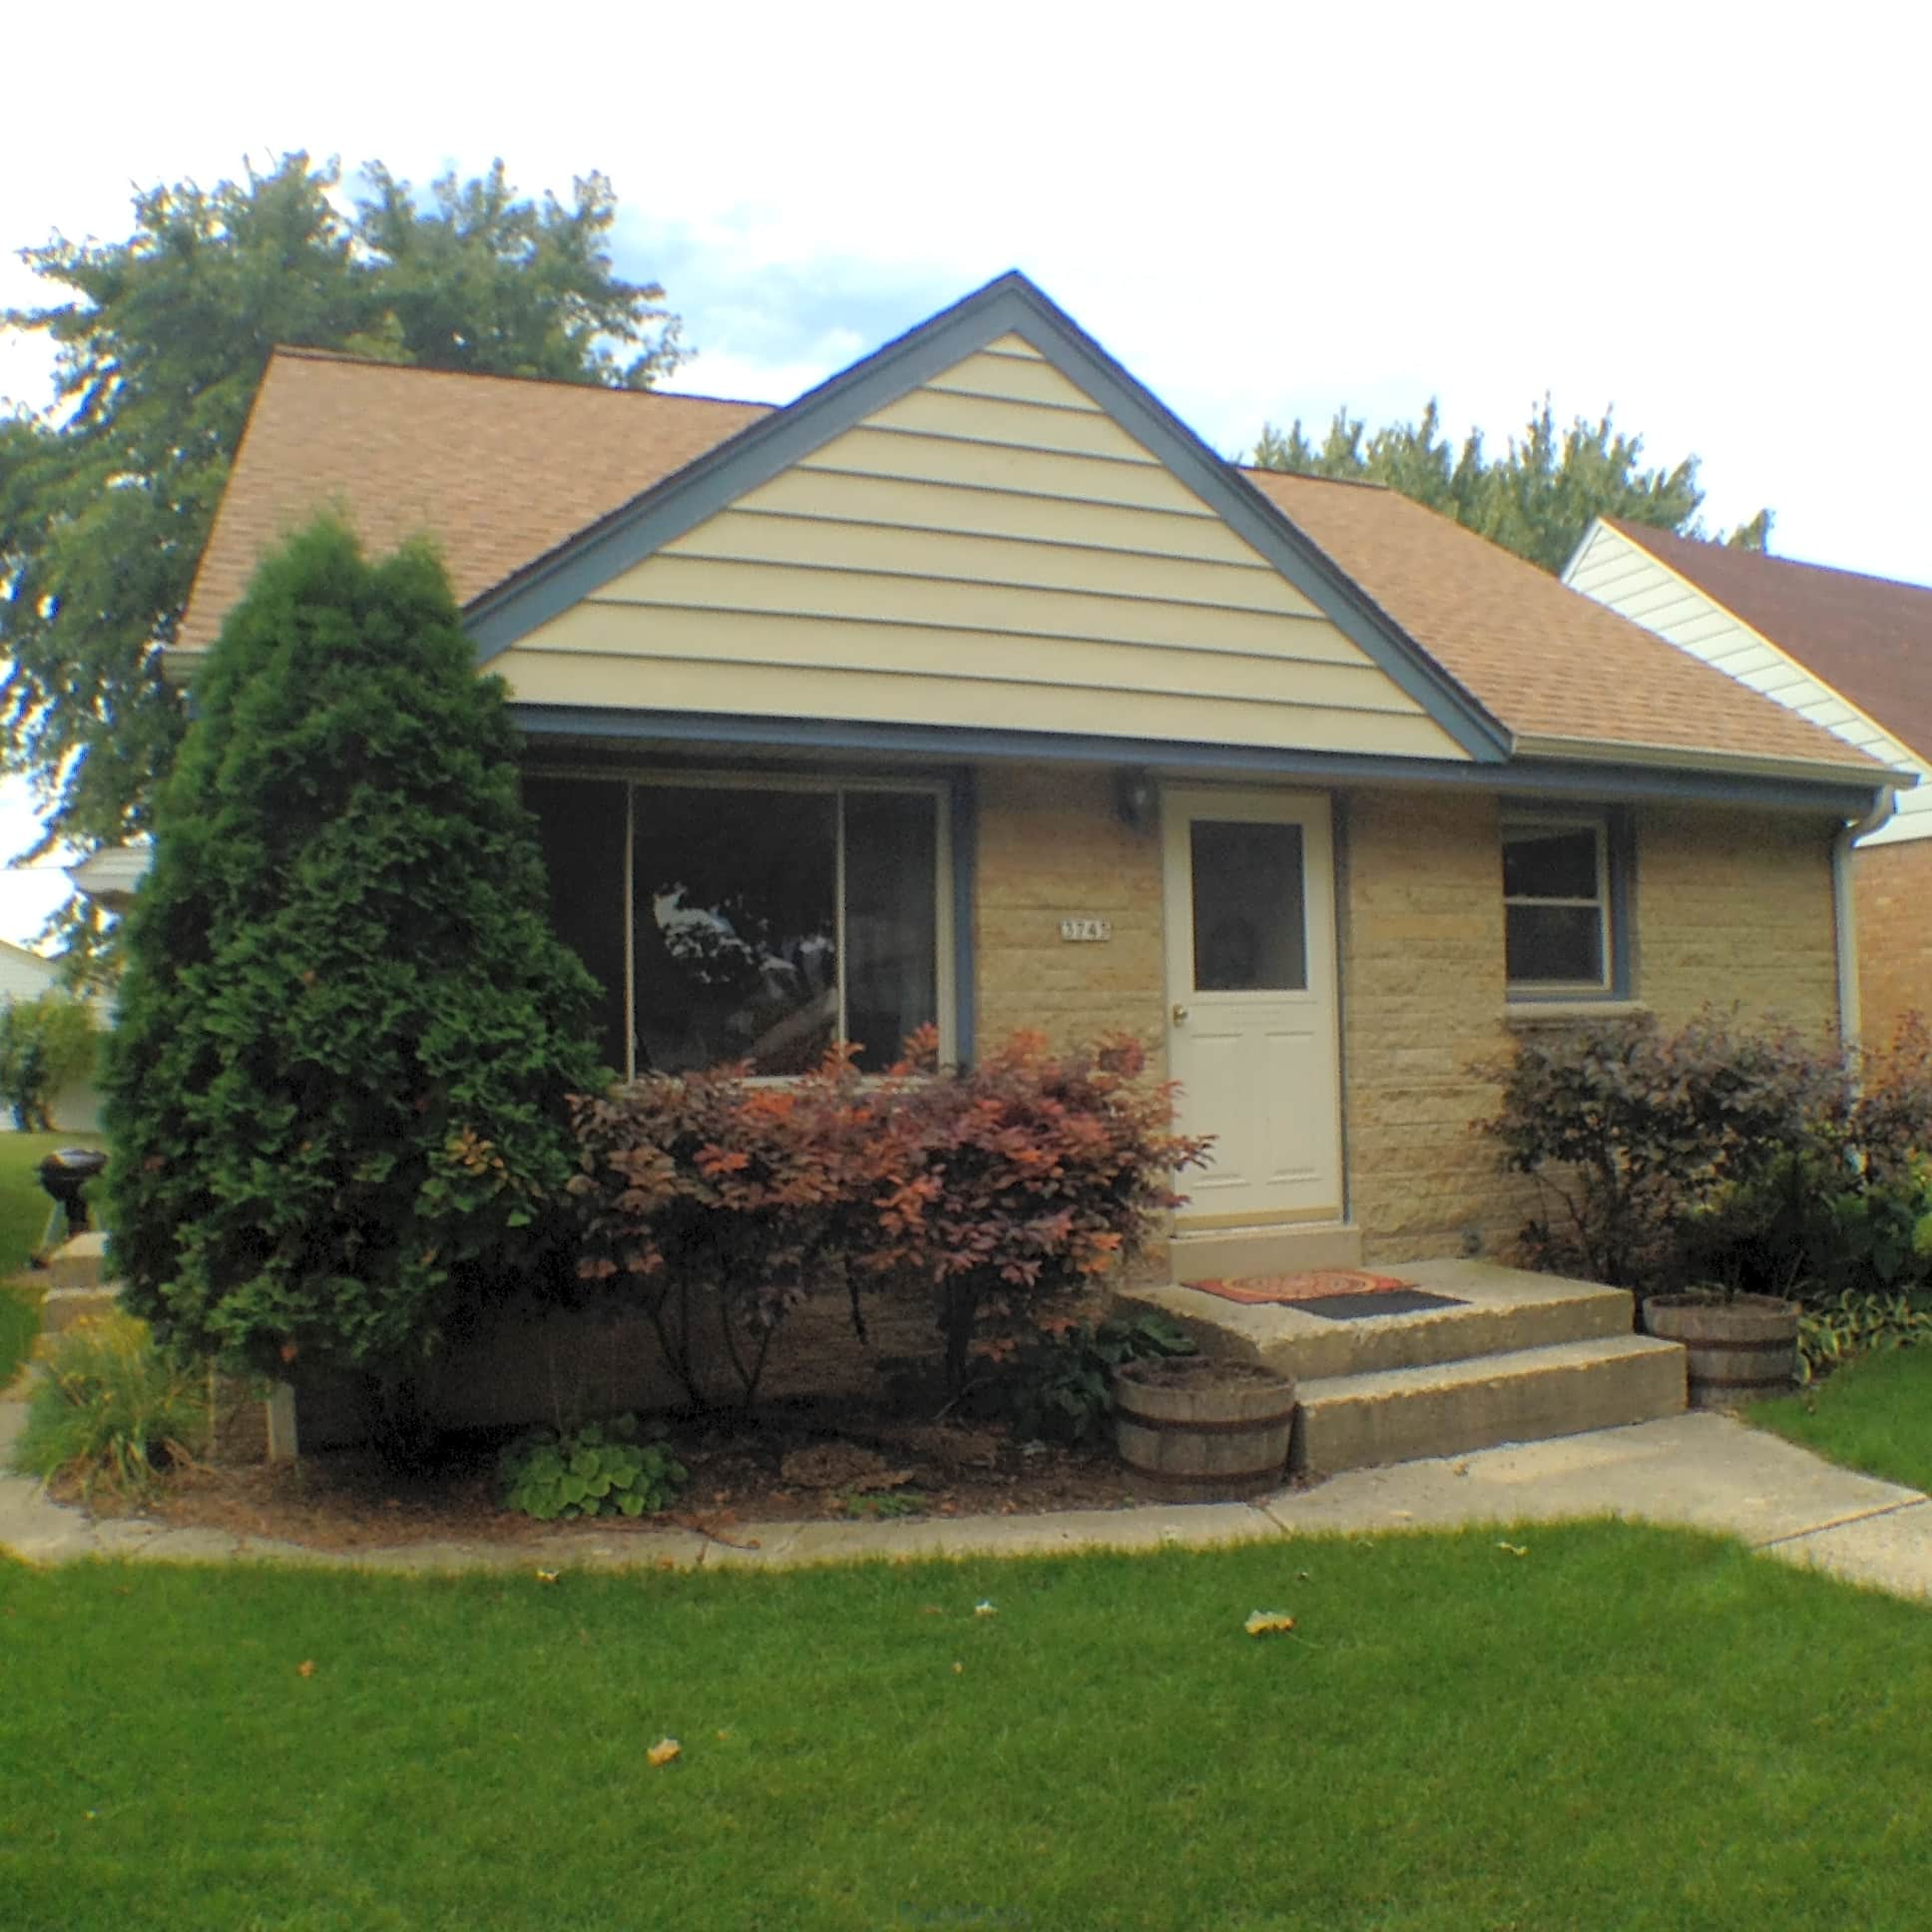 Houses For Rent: Milwaukee Houses For Rent In Milwaukee Wisconsin Rental Homes